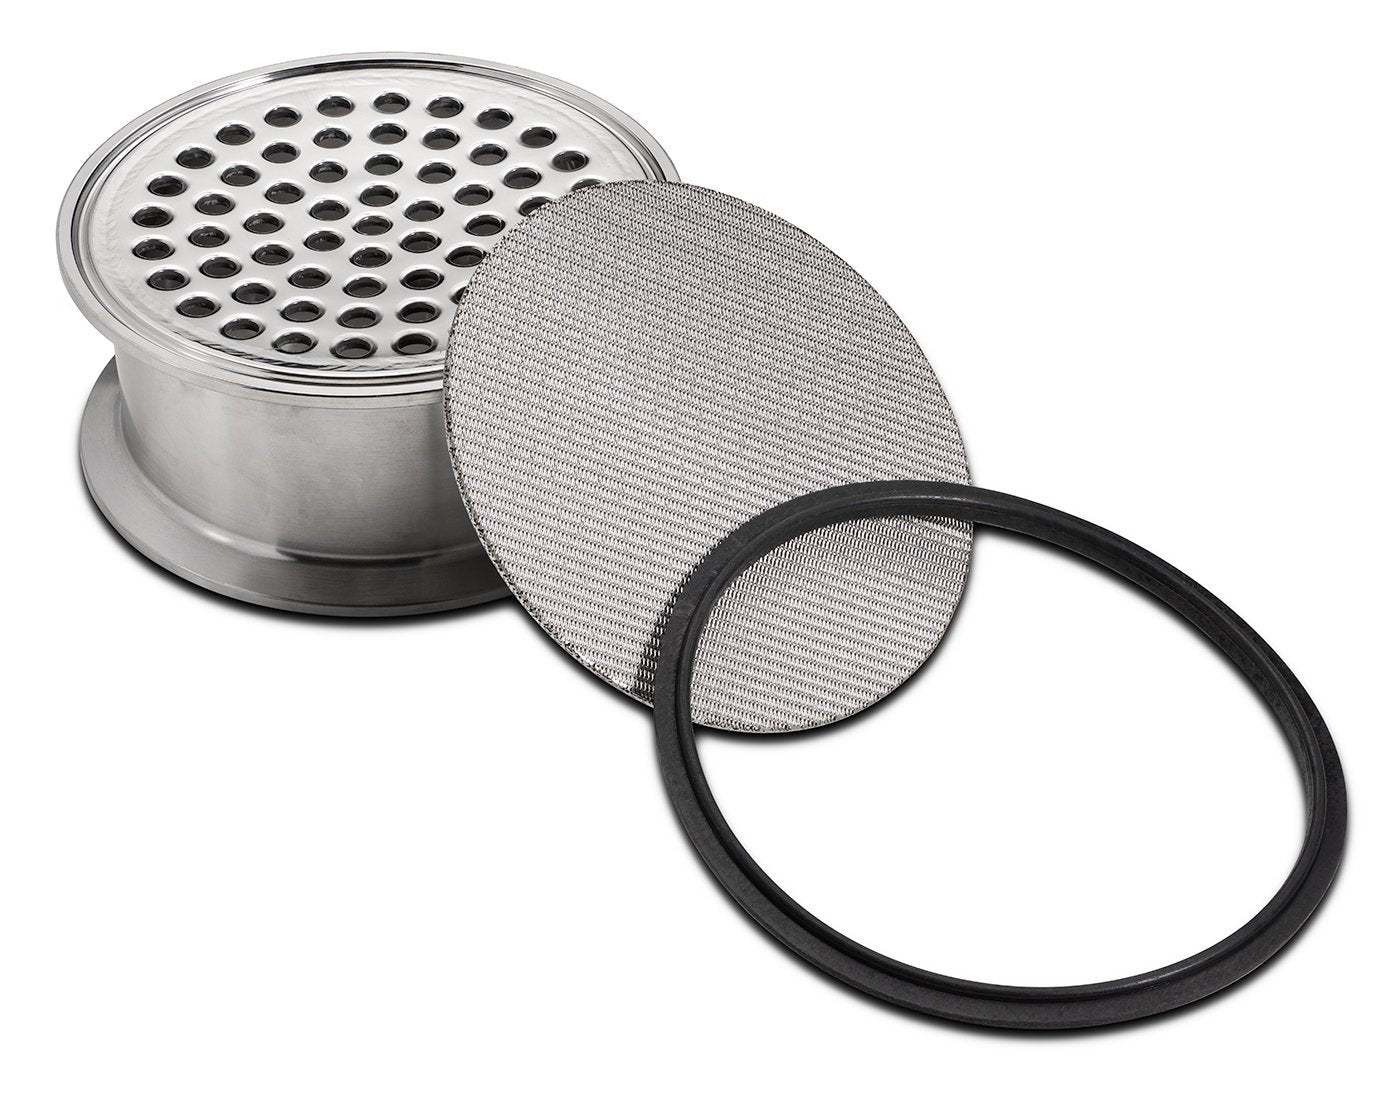 316L Stainless Dutch Weave Sintered Filter Disk 1 micron and up Shop All Categories BVV